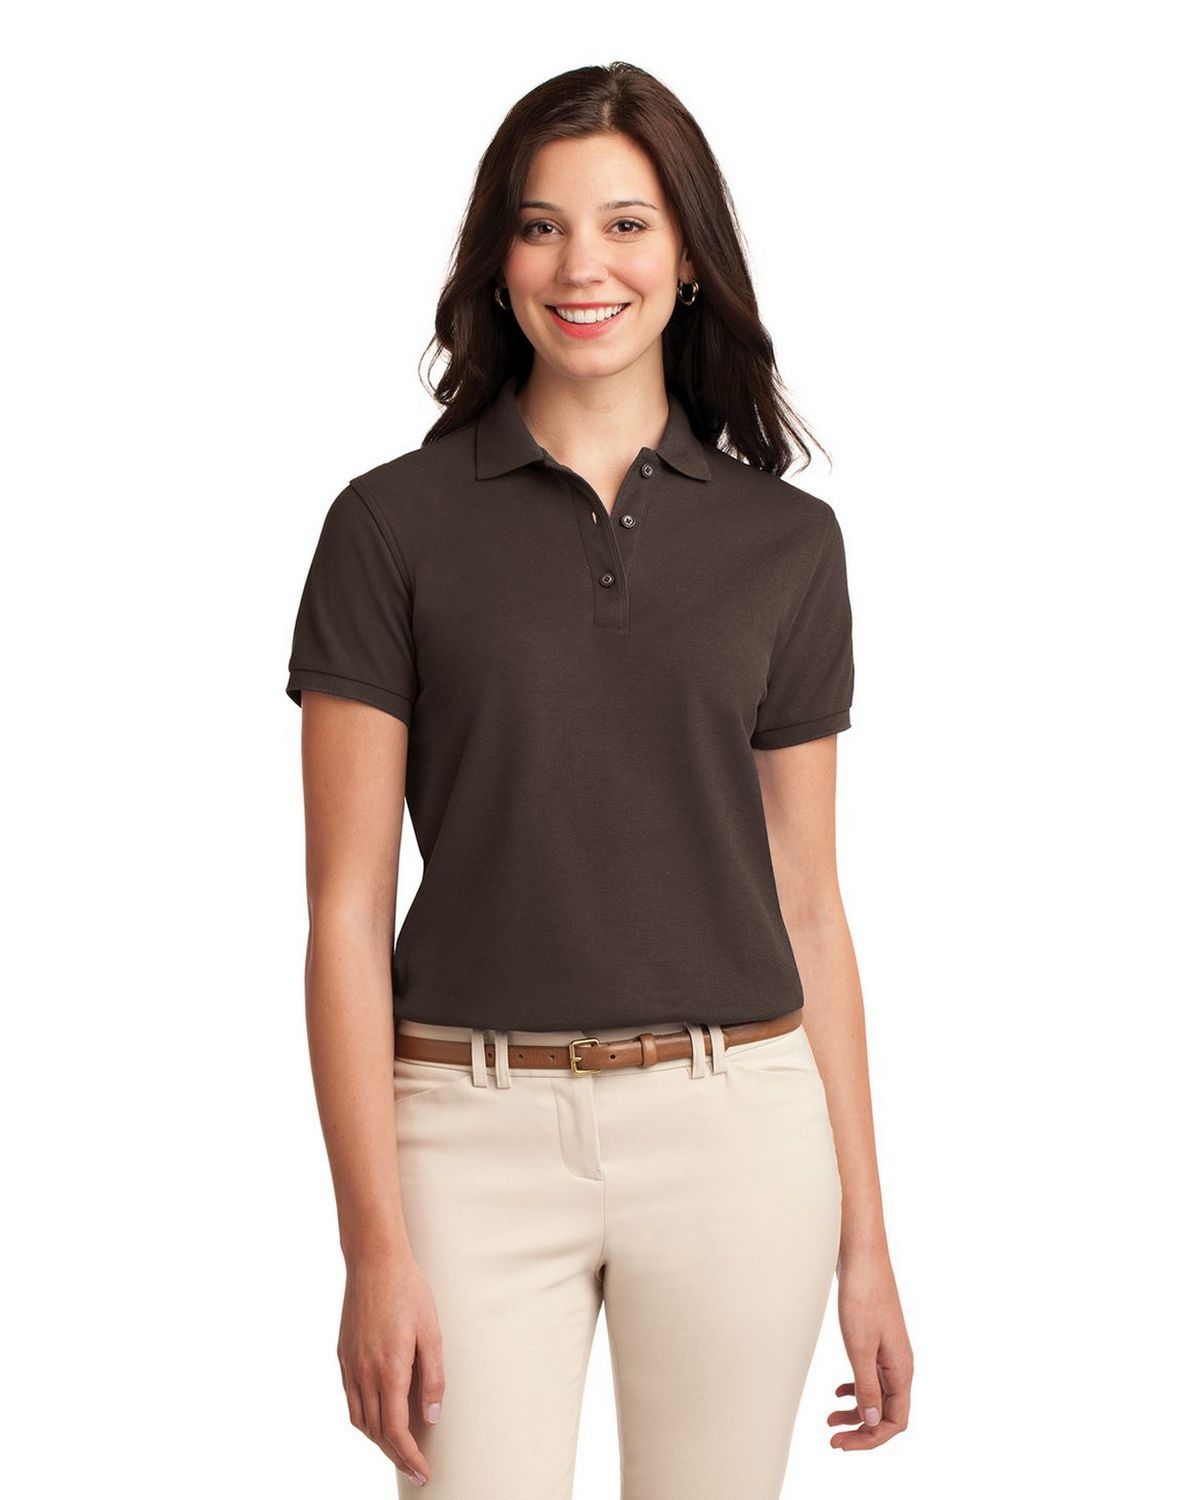 Port Authority L500 Women's Silk Touch Polo - Coffee Bean - XS #silk